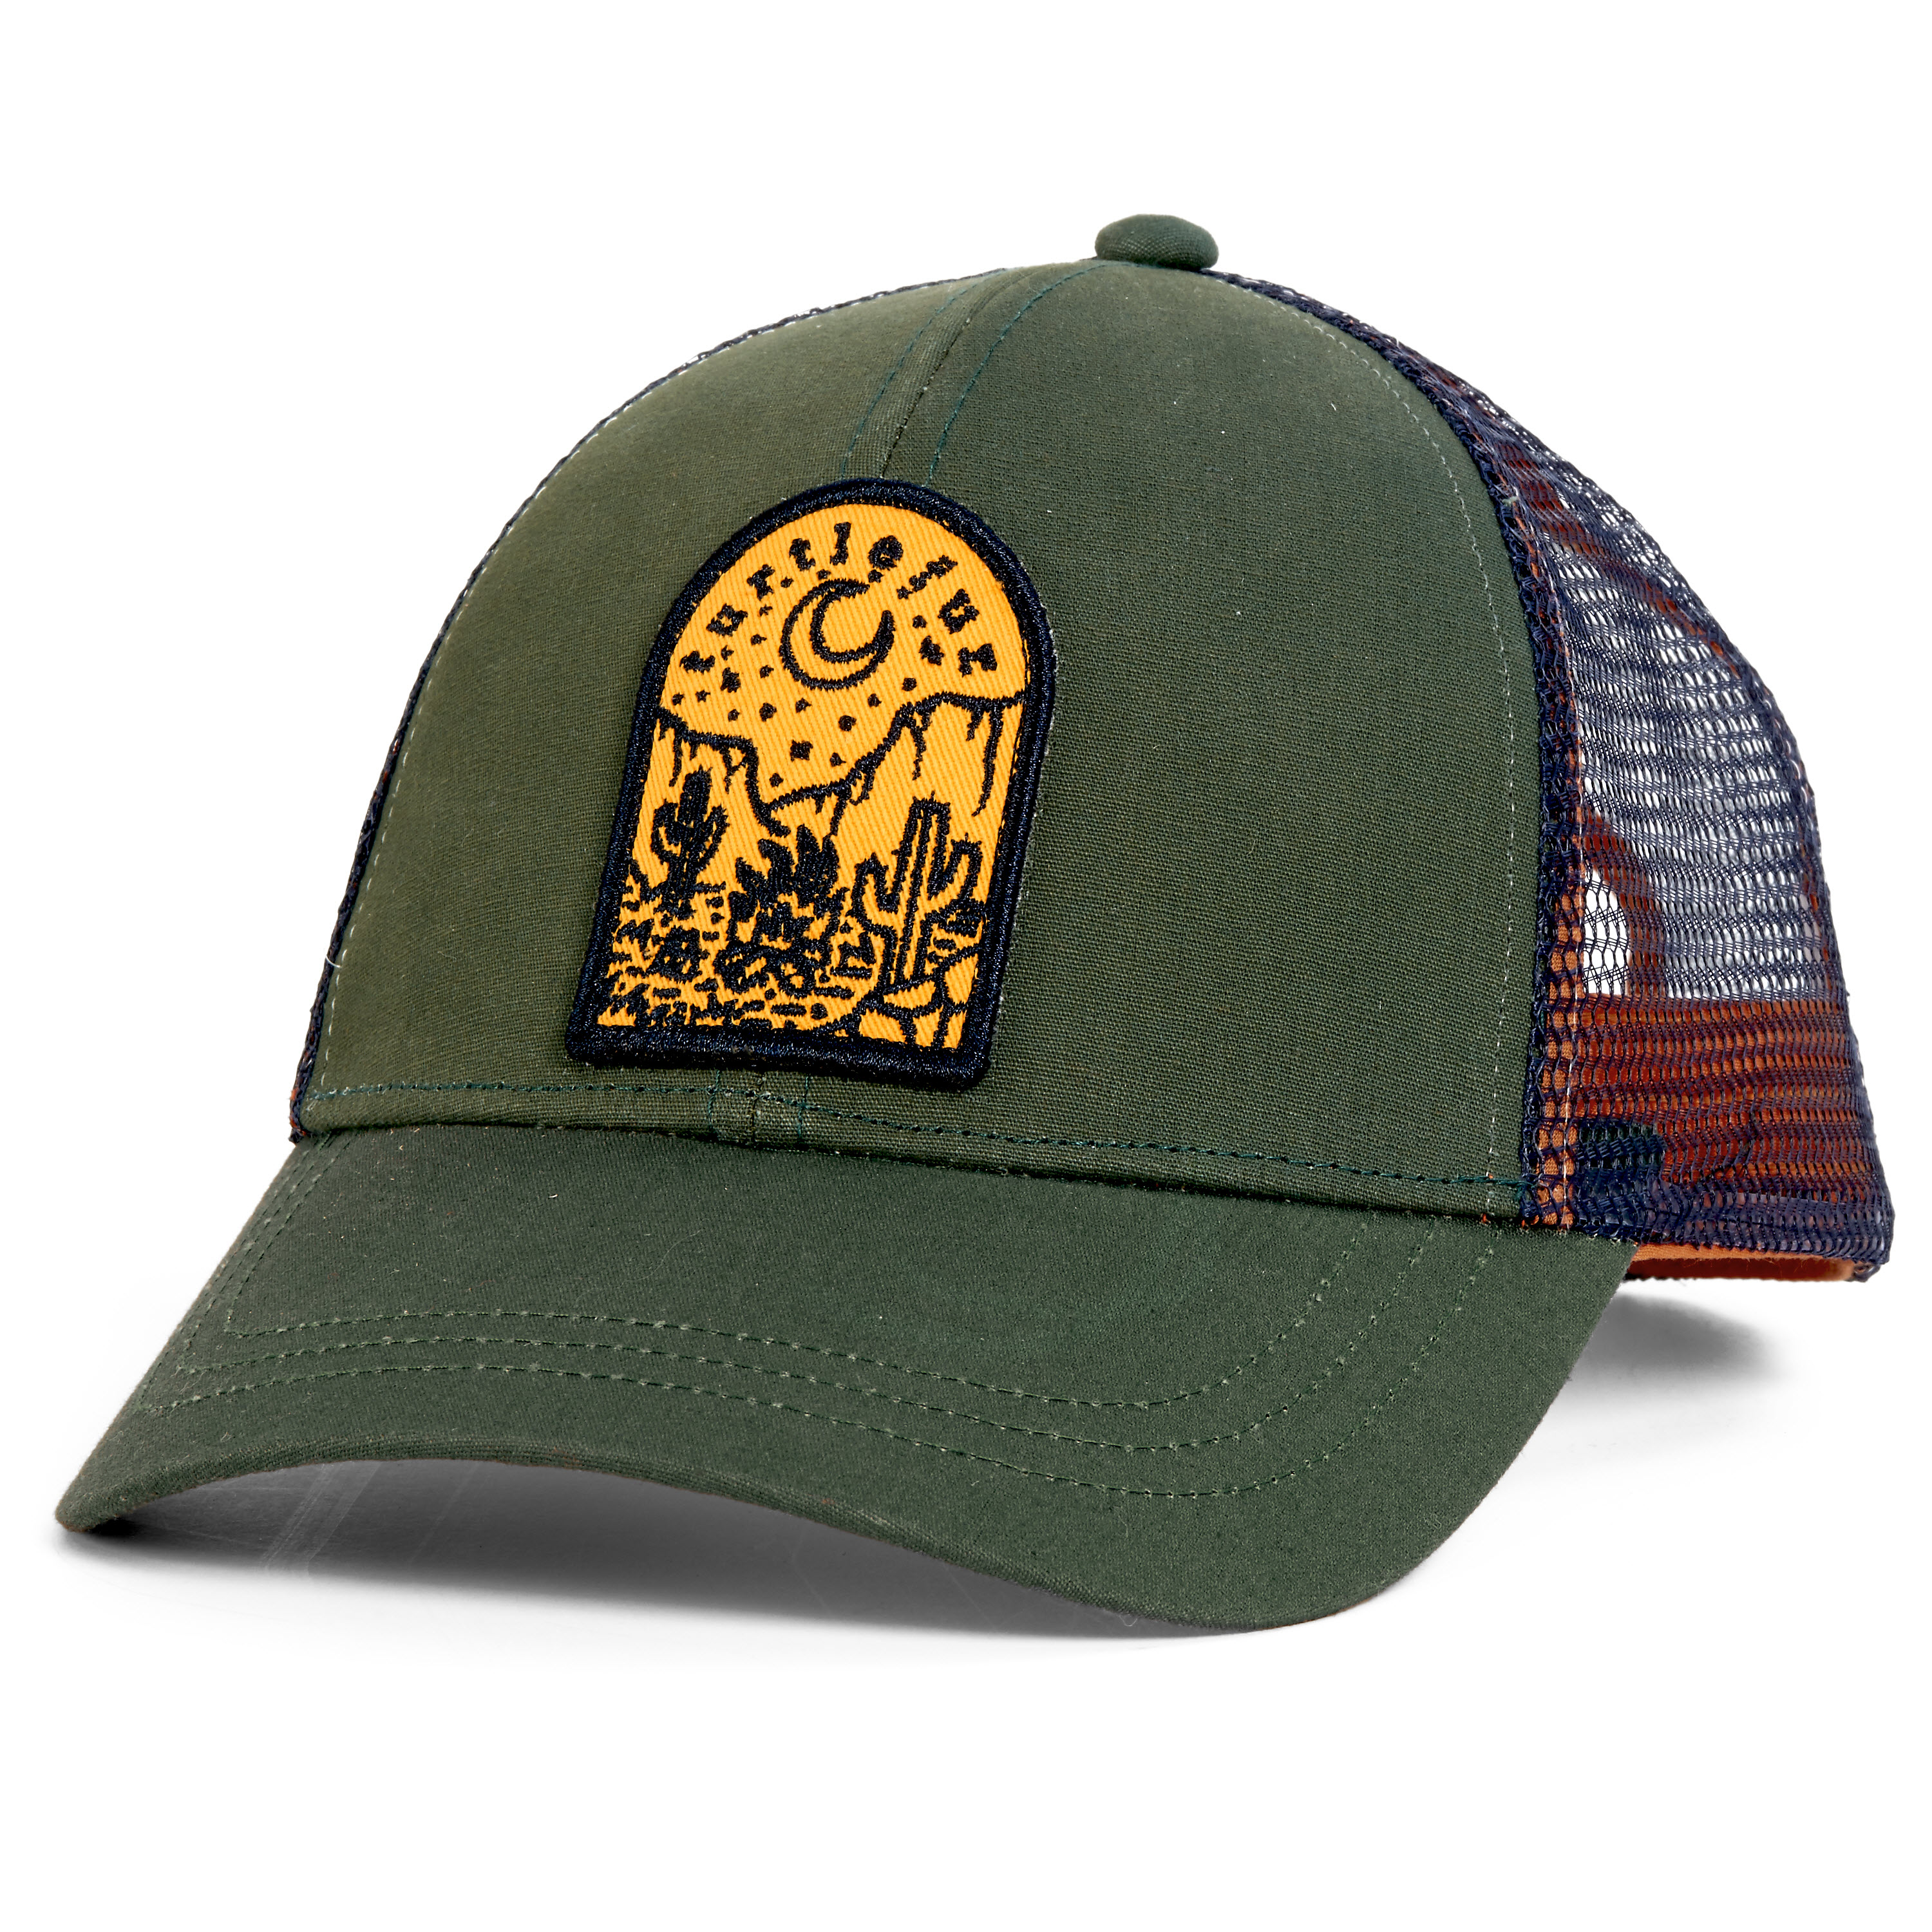 Turtle Fur Saguaro Cactus Trucker Hat